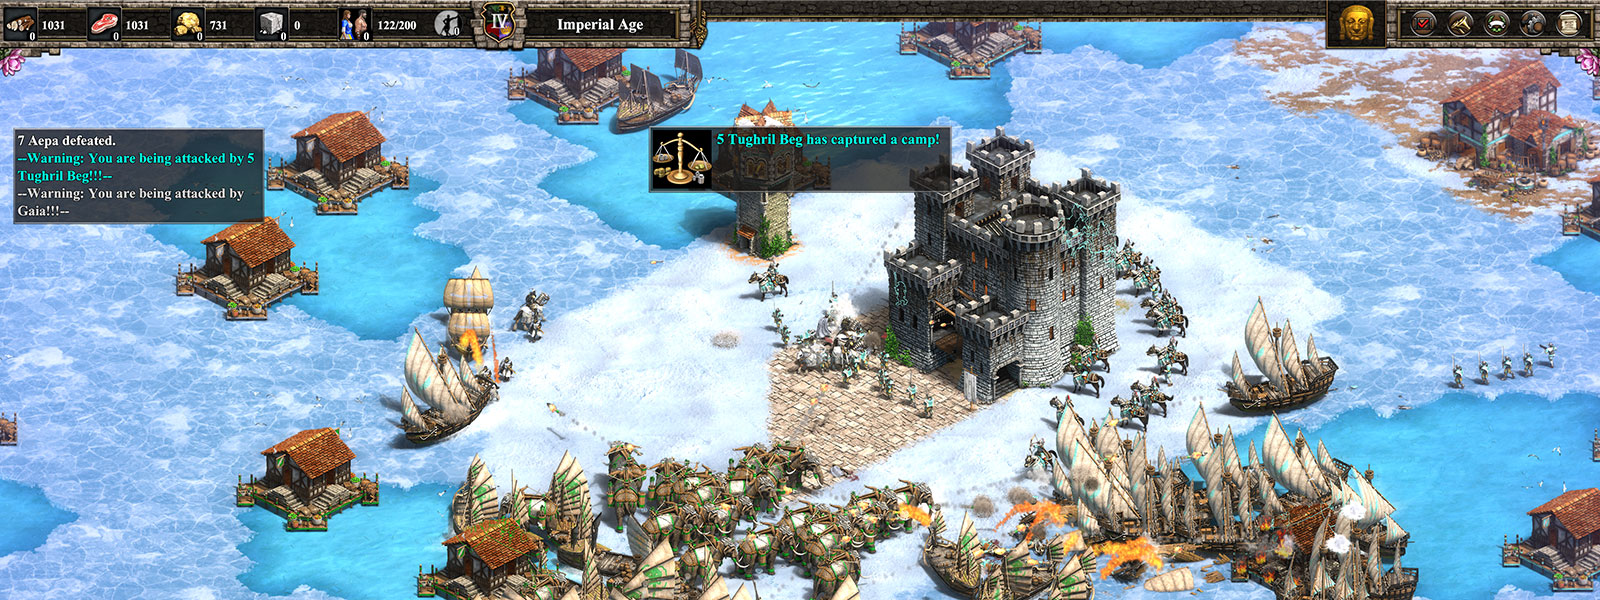 Screenshot of gameplay from Age of Empires II: Definitive Edition. A fight scene in snow and ice.